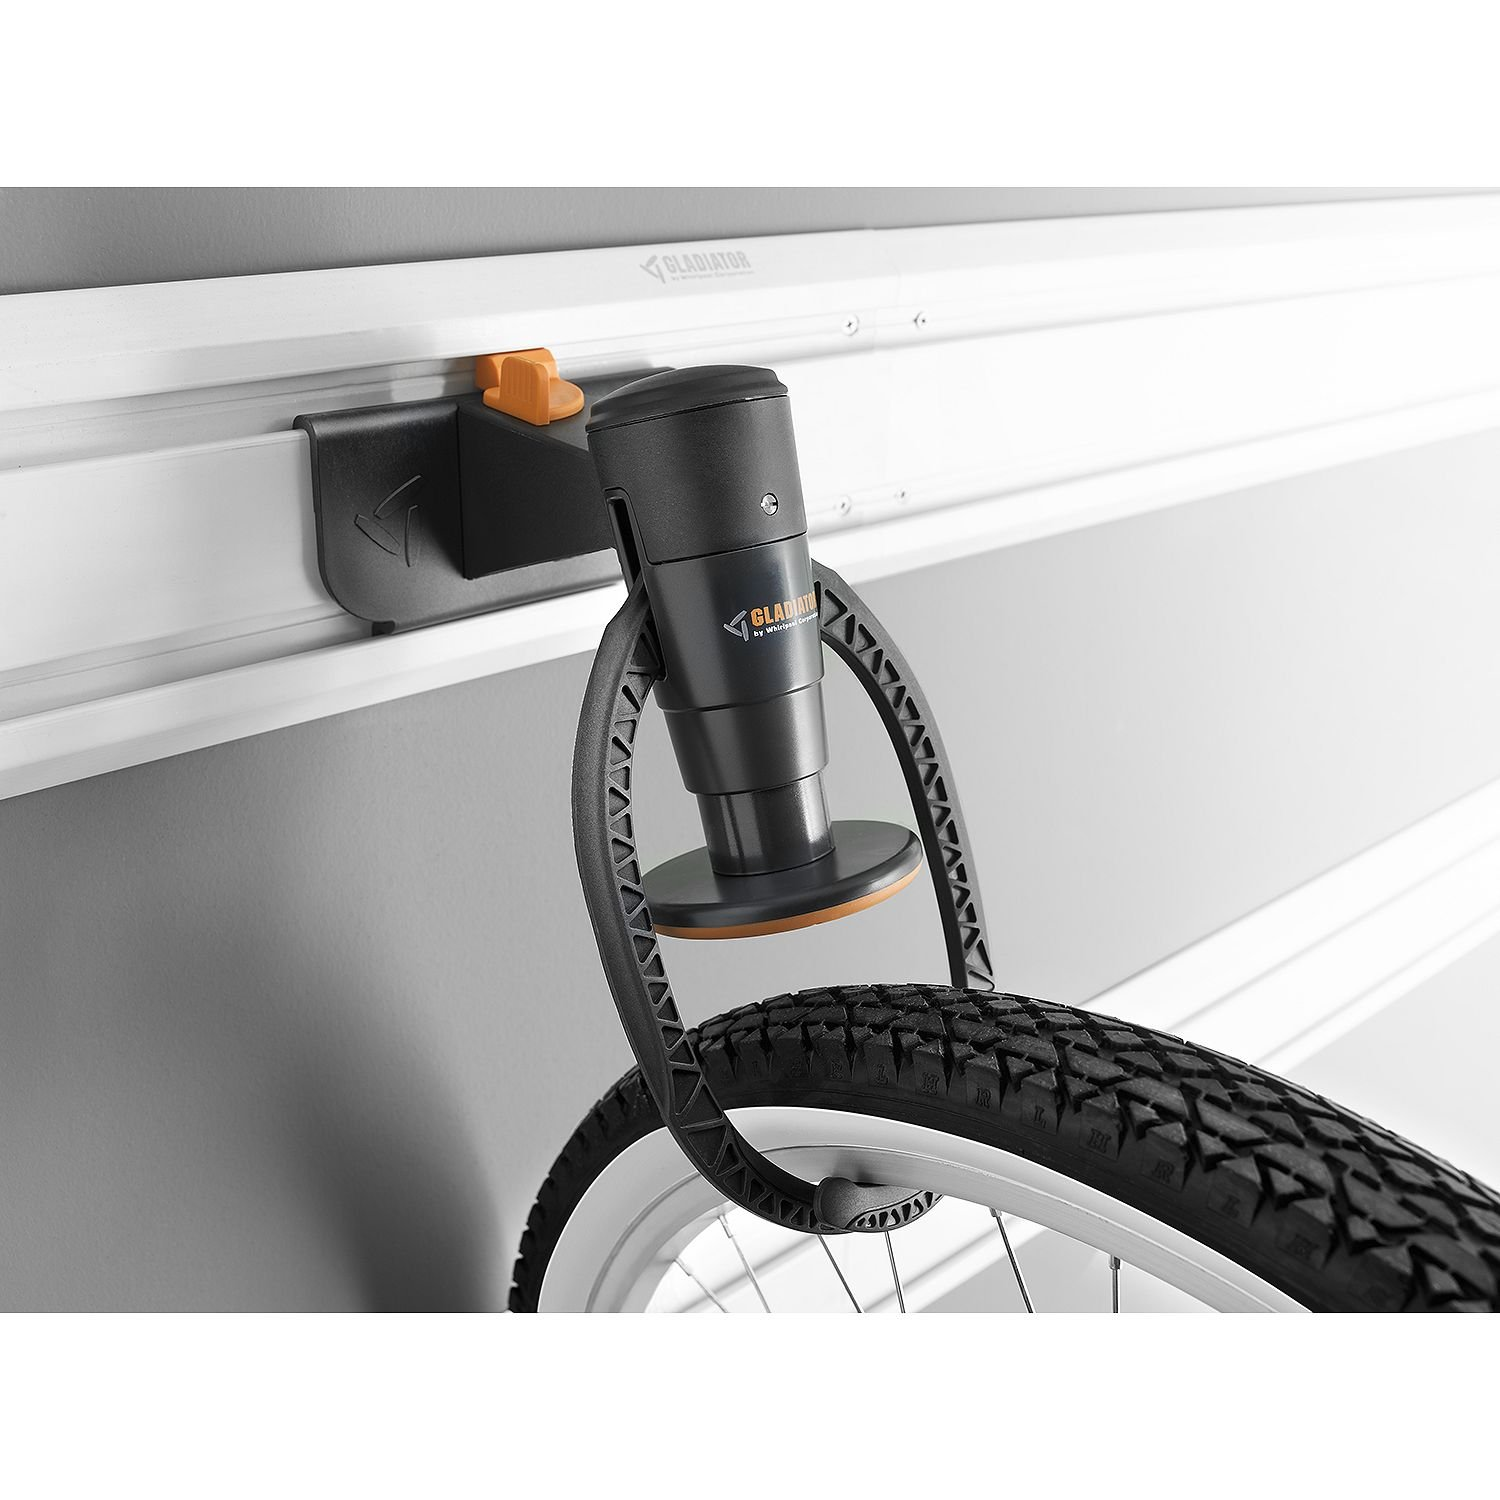 Product of Gladiator Bike Claw for GearTrack or GearWall - [Bulk Savings]